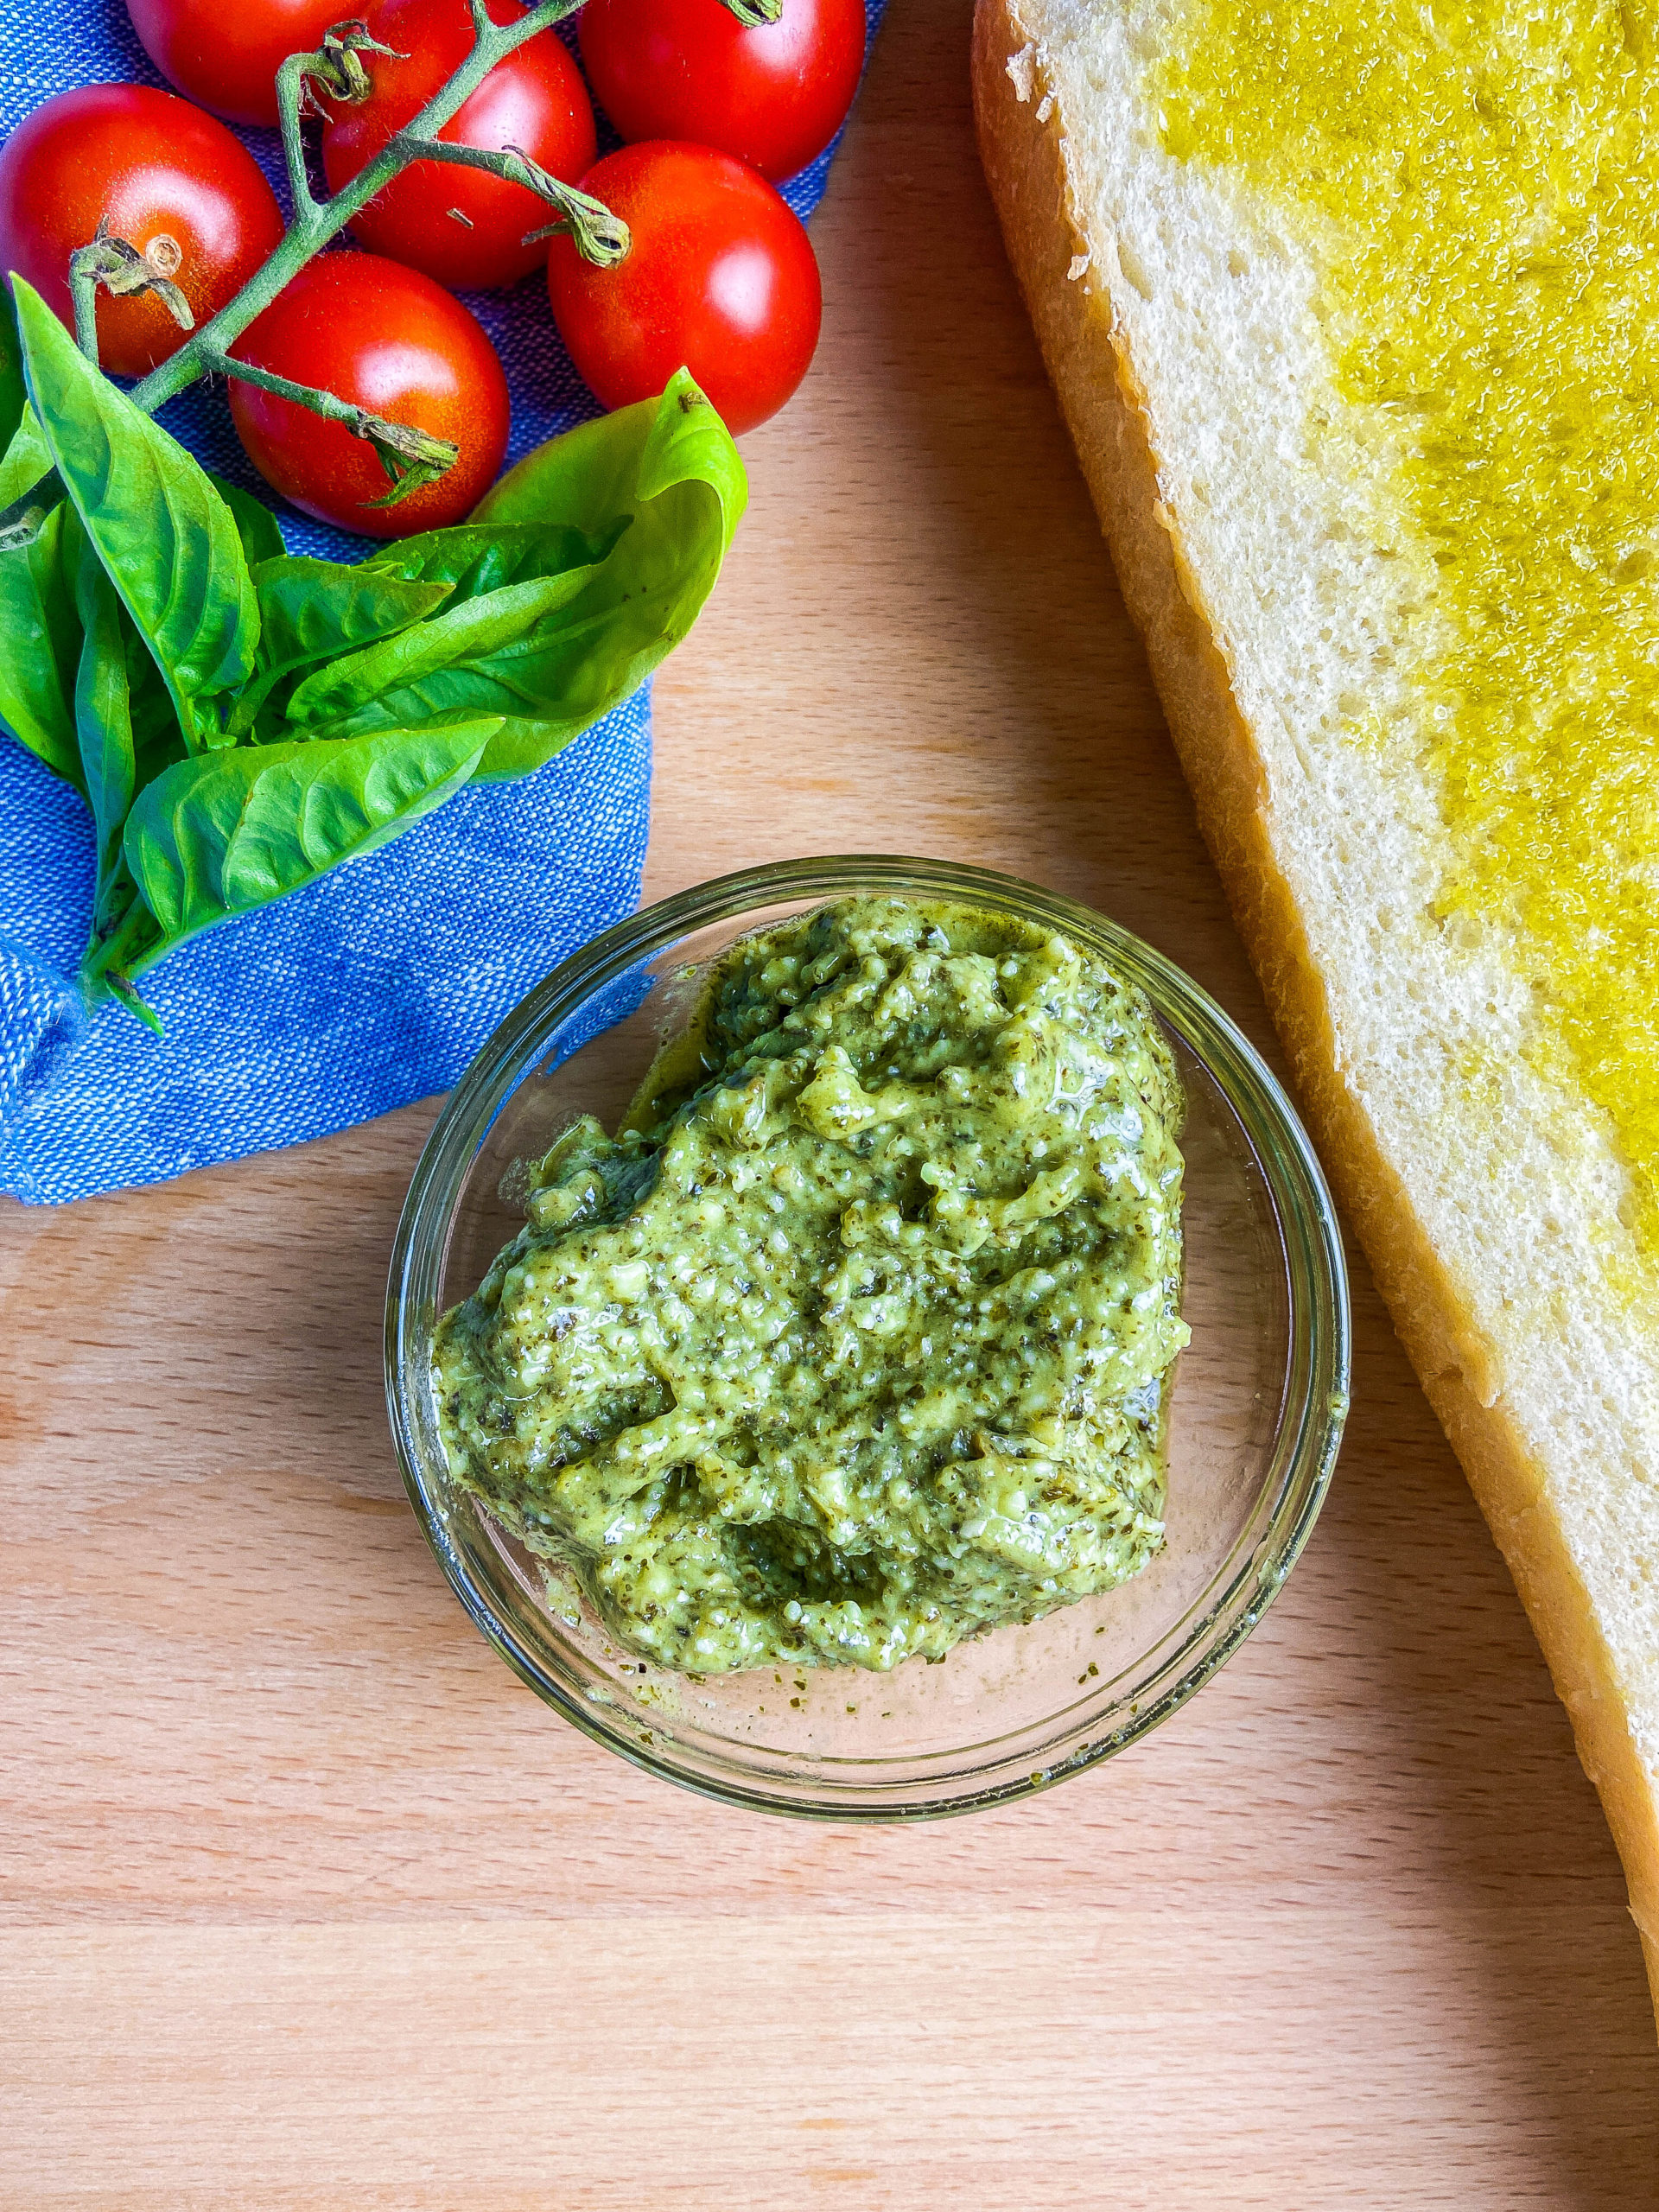 Overhead photo of pesto in a clear glass bowl. Loaf of bread, blue towel, basil and tomatoes on a wooden cutting board.